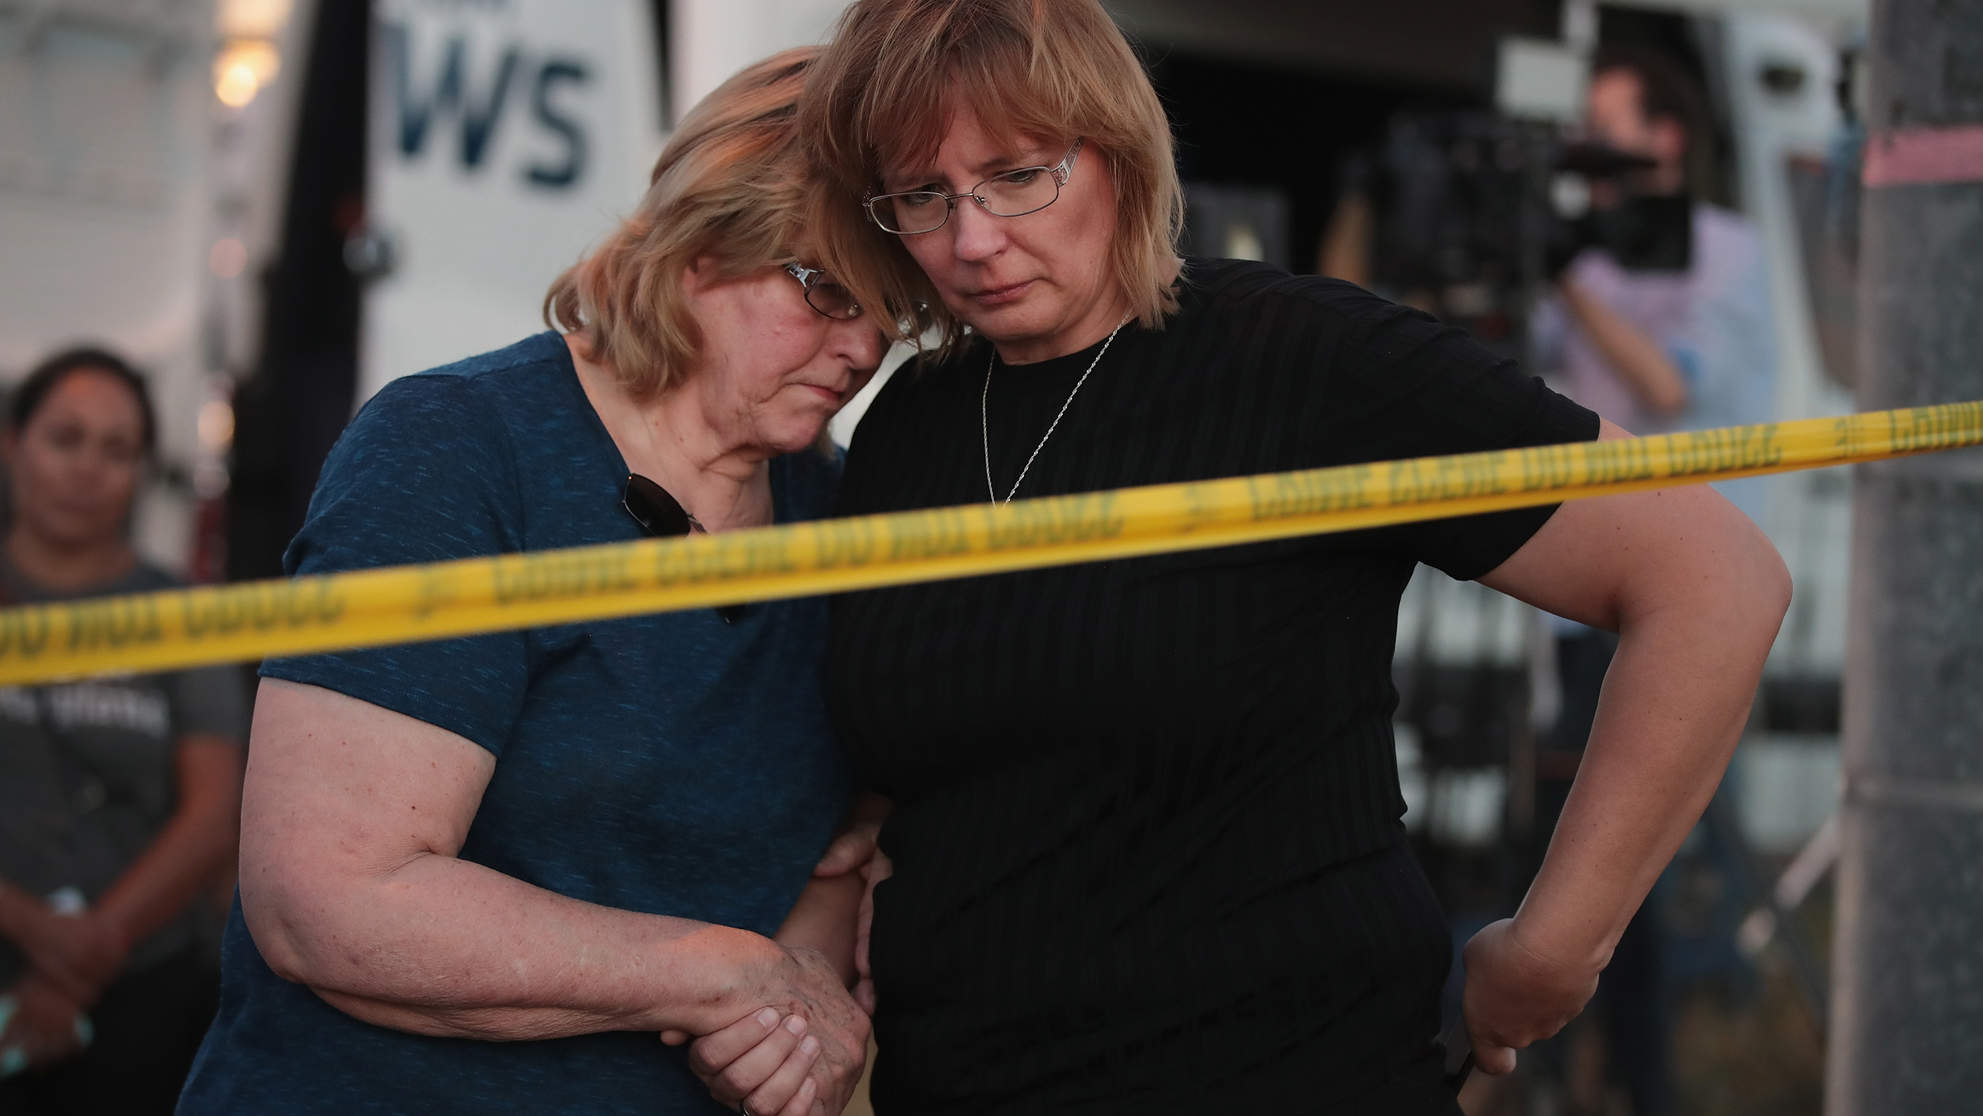 Why We Need to Stop Blaming Mass Shootings on Mental Illness